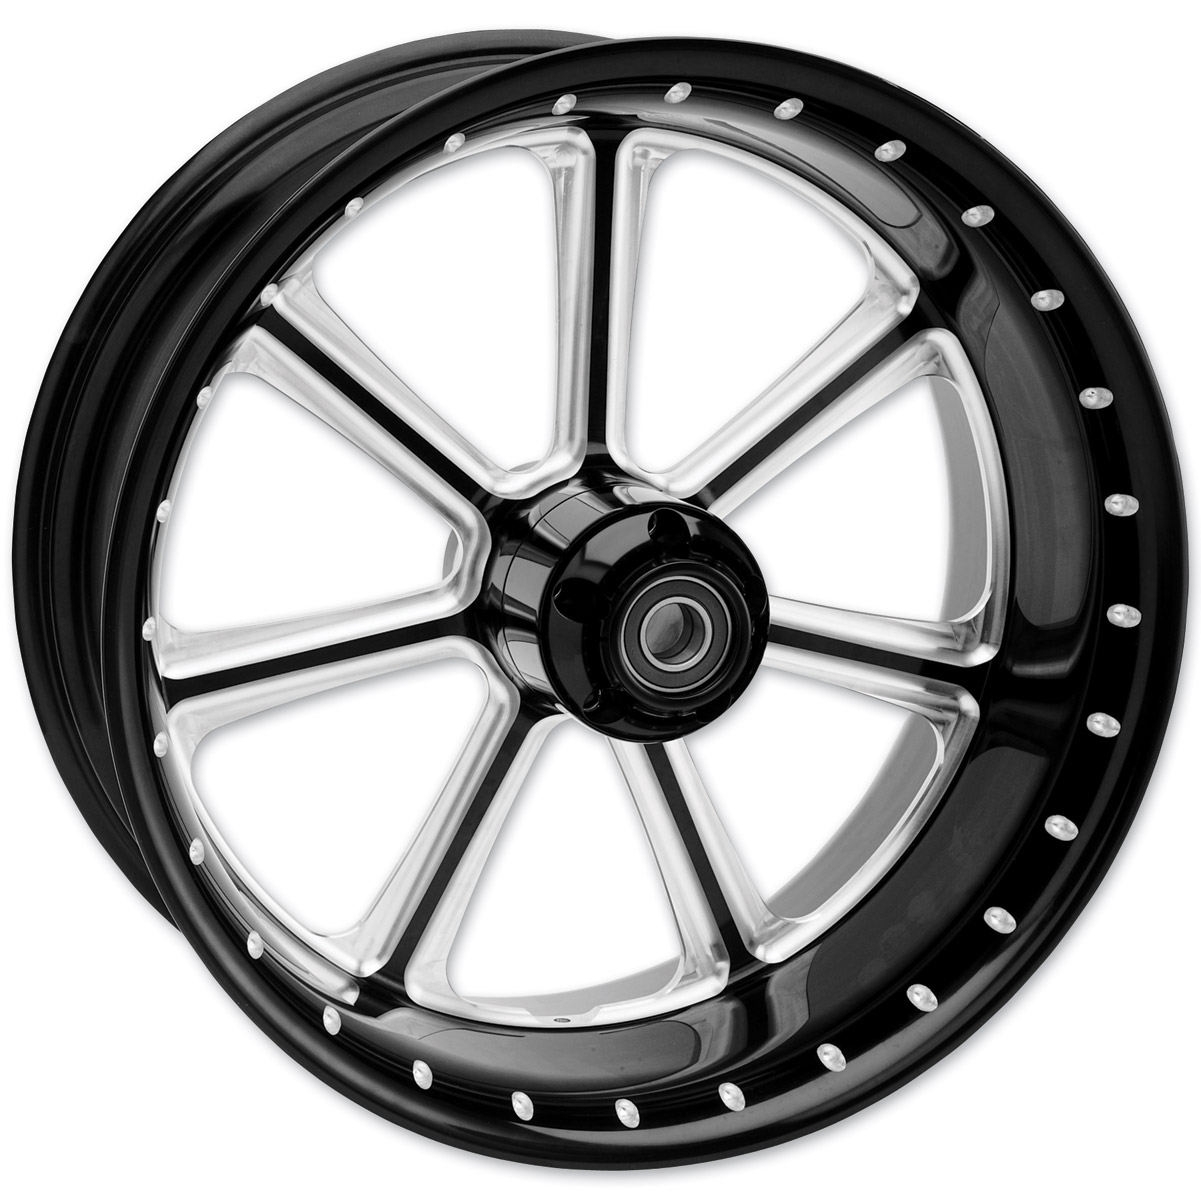 Roland Sands Design Contrast Cut Diesel Rear Wheel with ABS, 18″ x 3.5